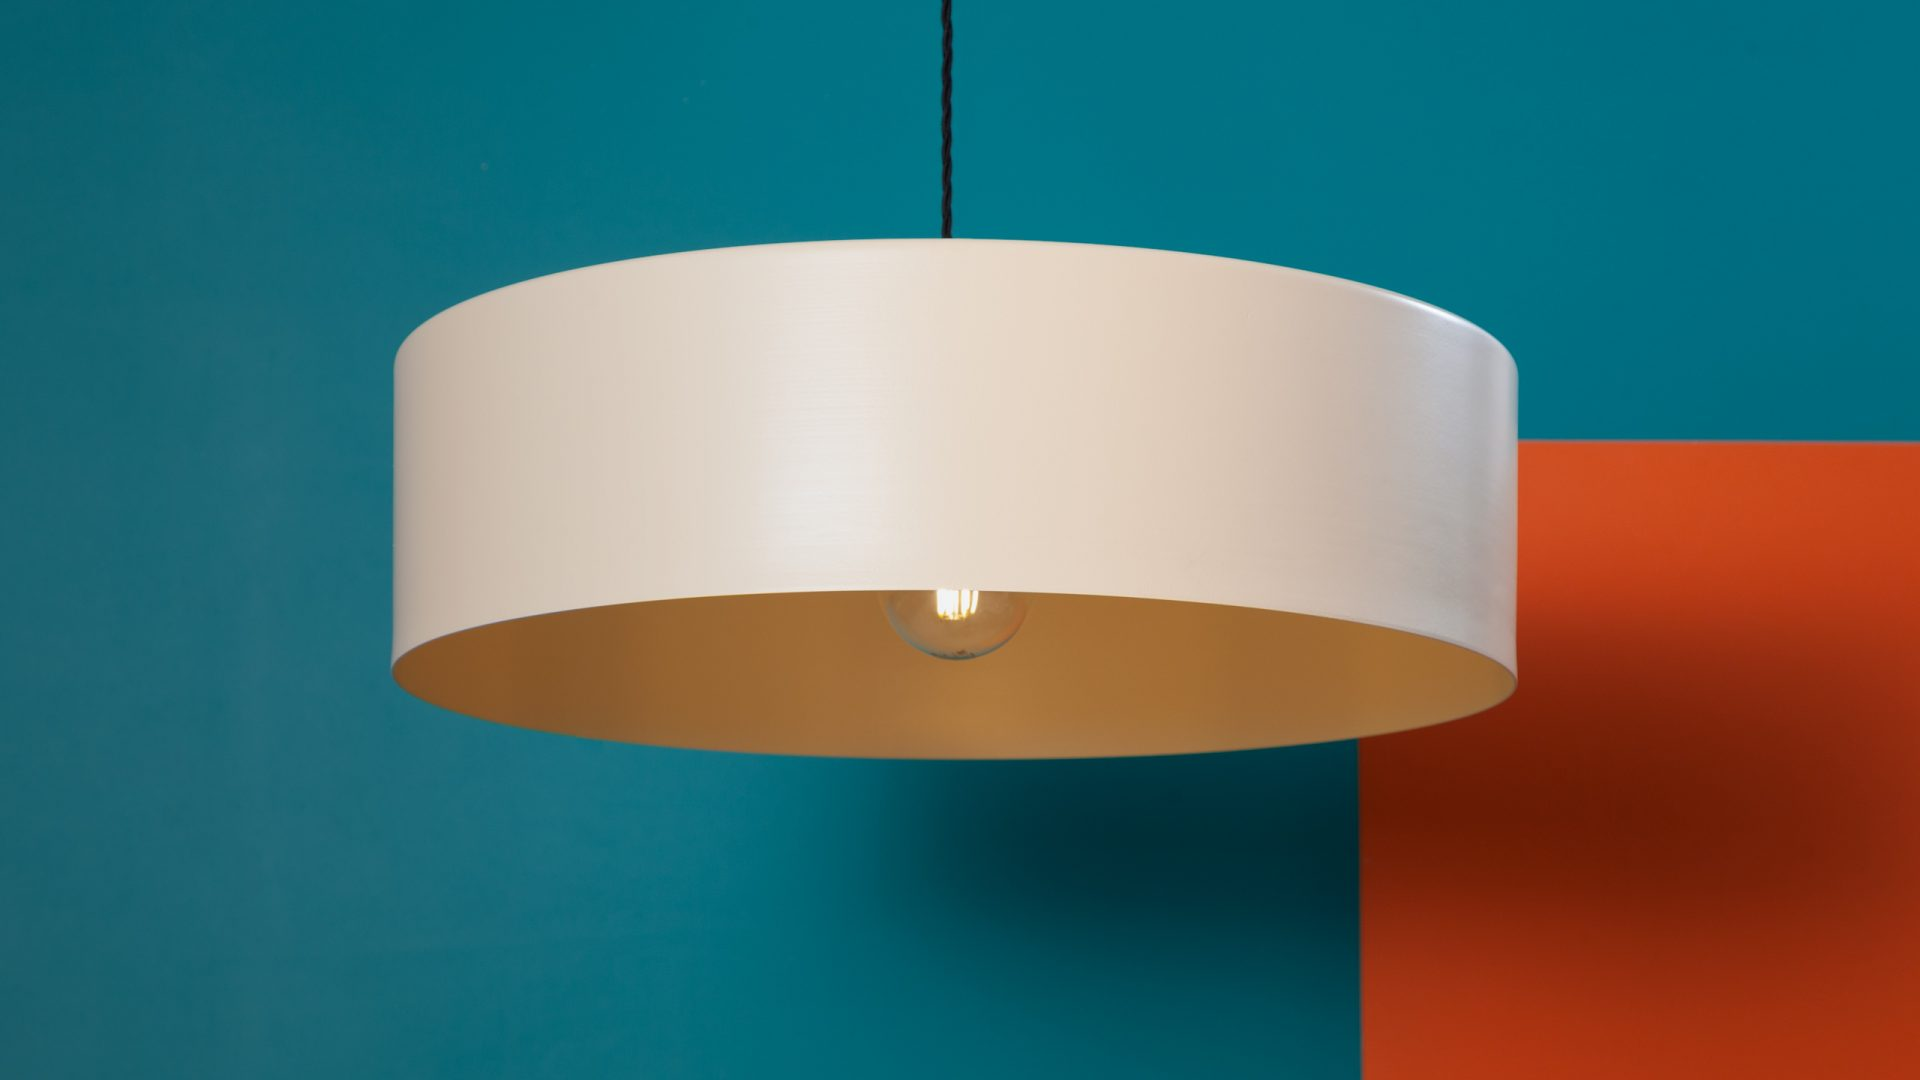 Commercial lighting by Liqui Contracts